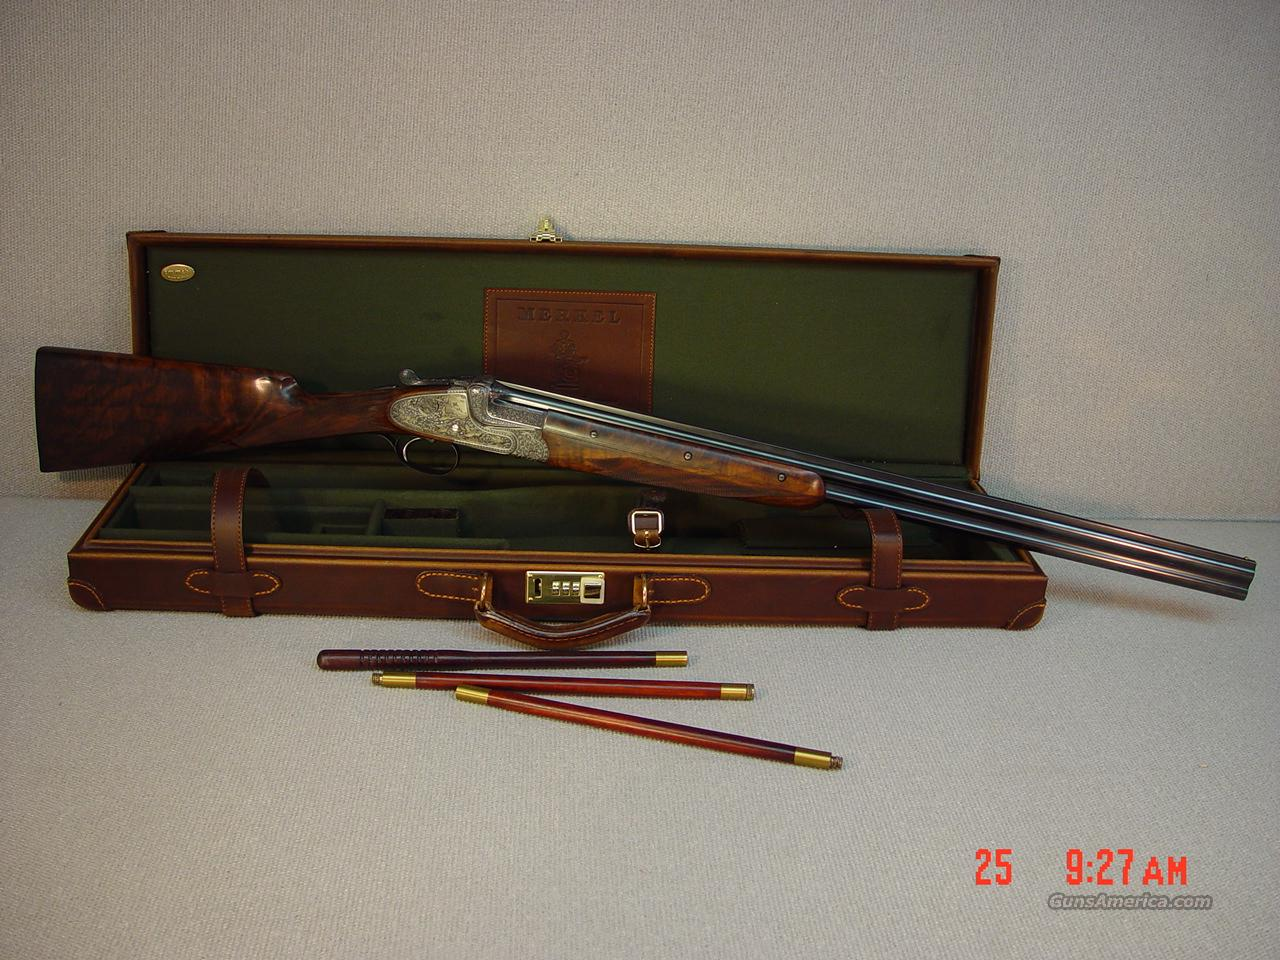 MERKEL Model 303EL 28 GAUGE  Guns > Shotguns > Merkel Shotguns